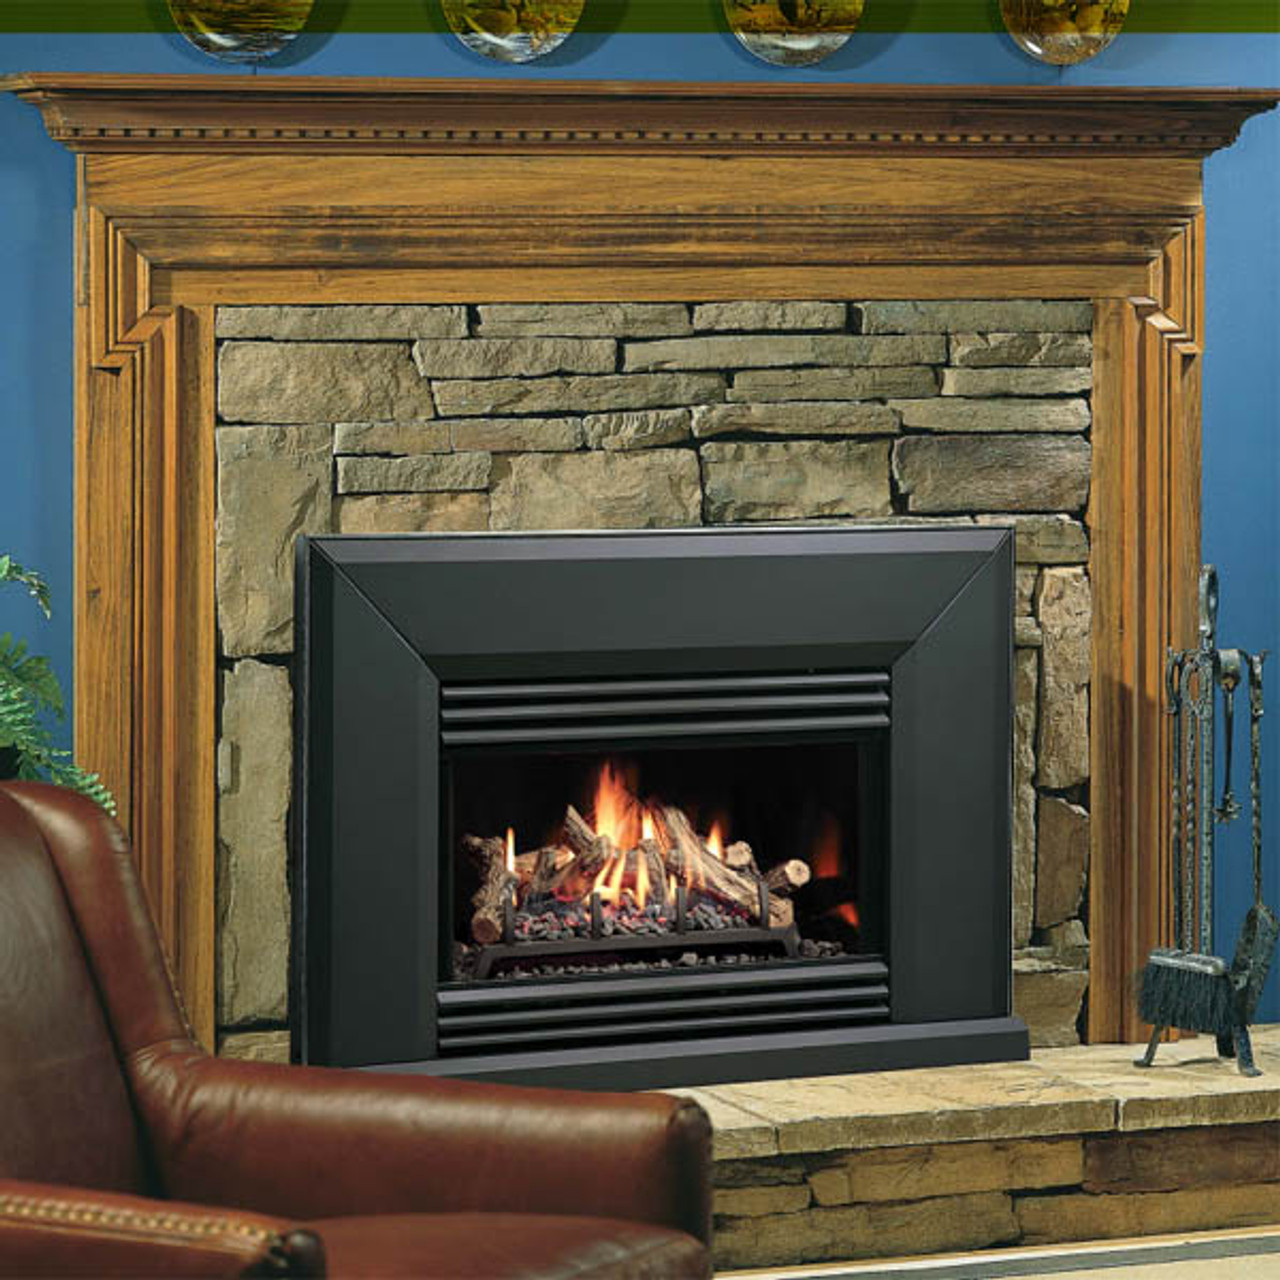 inserts fireplace omarrobles vented www to pertaining consumer design reports insert ideal com gas rble